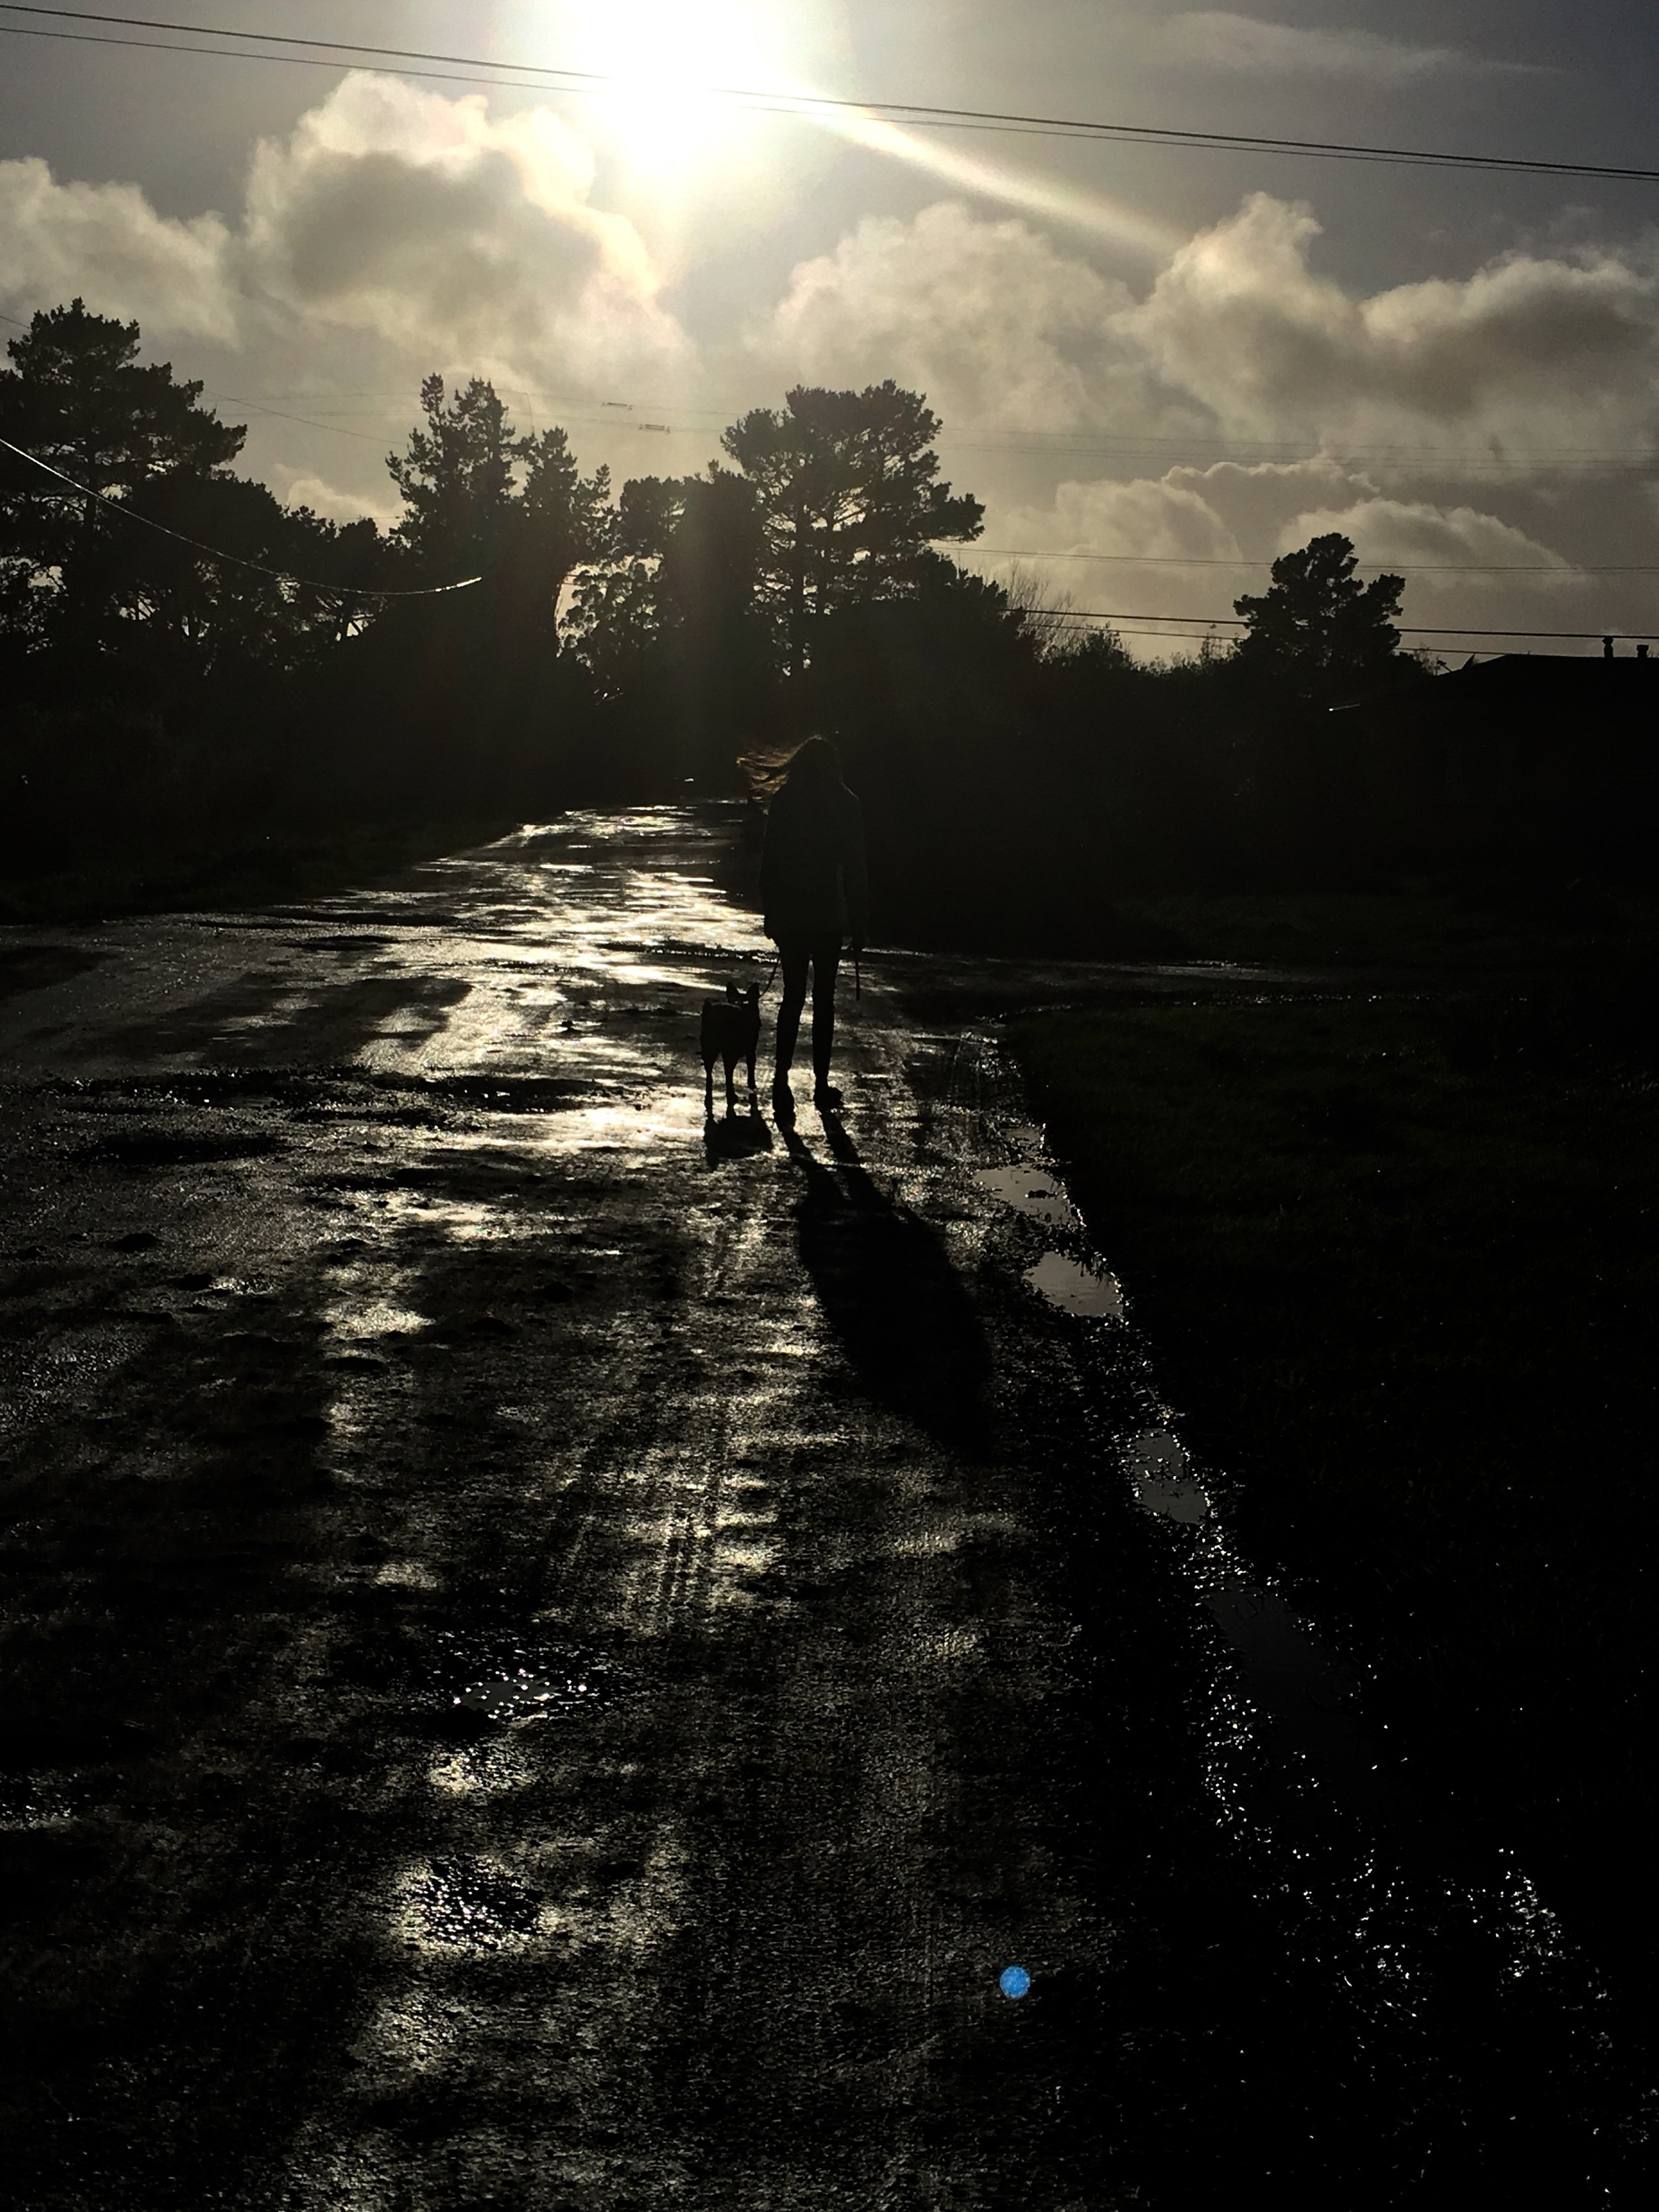 """In this shot, Clare walks her dog on a wet street. This image is silkscreened onto  Will You Still Take Good Care of Me , the new 7"""" from Peggy Honeywell. Image provided by the artist."""